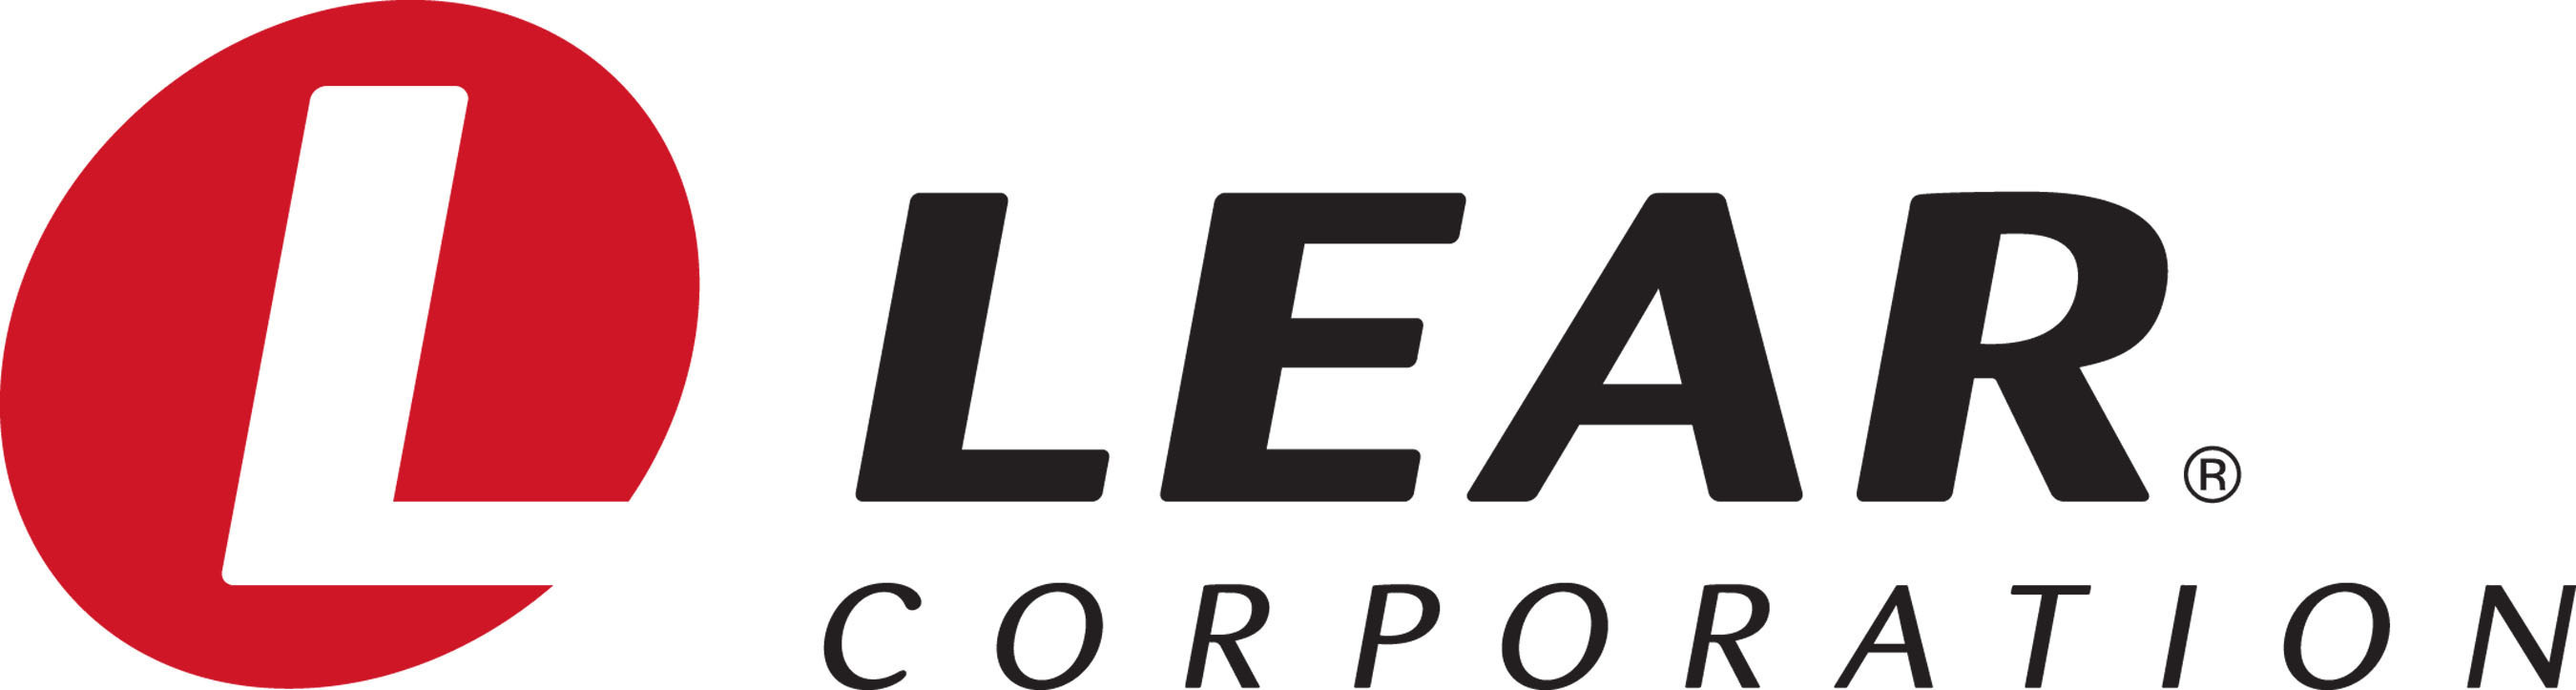 Lear Stocks rate high in ESG. Portola Creek - Investment Managers in ESG